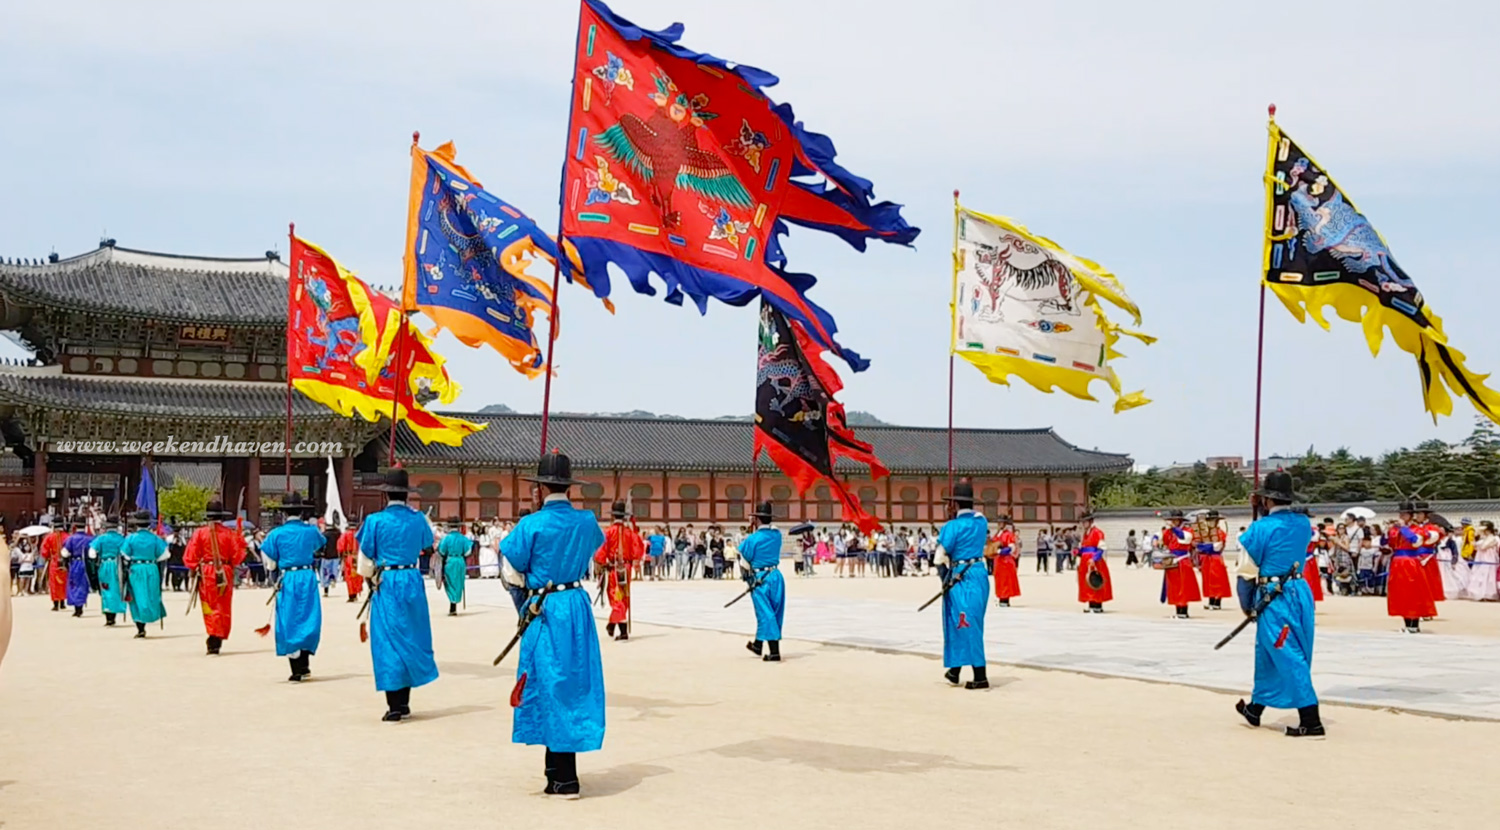 Gyeongbokgung Palace - Changing of Royal Guards